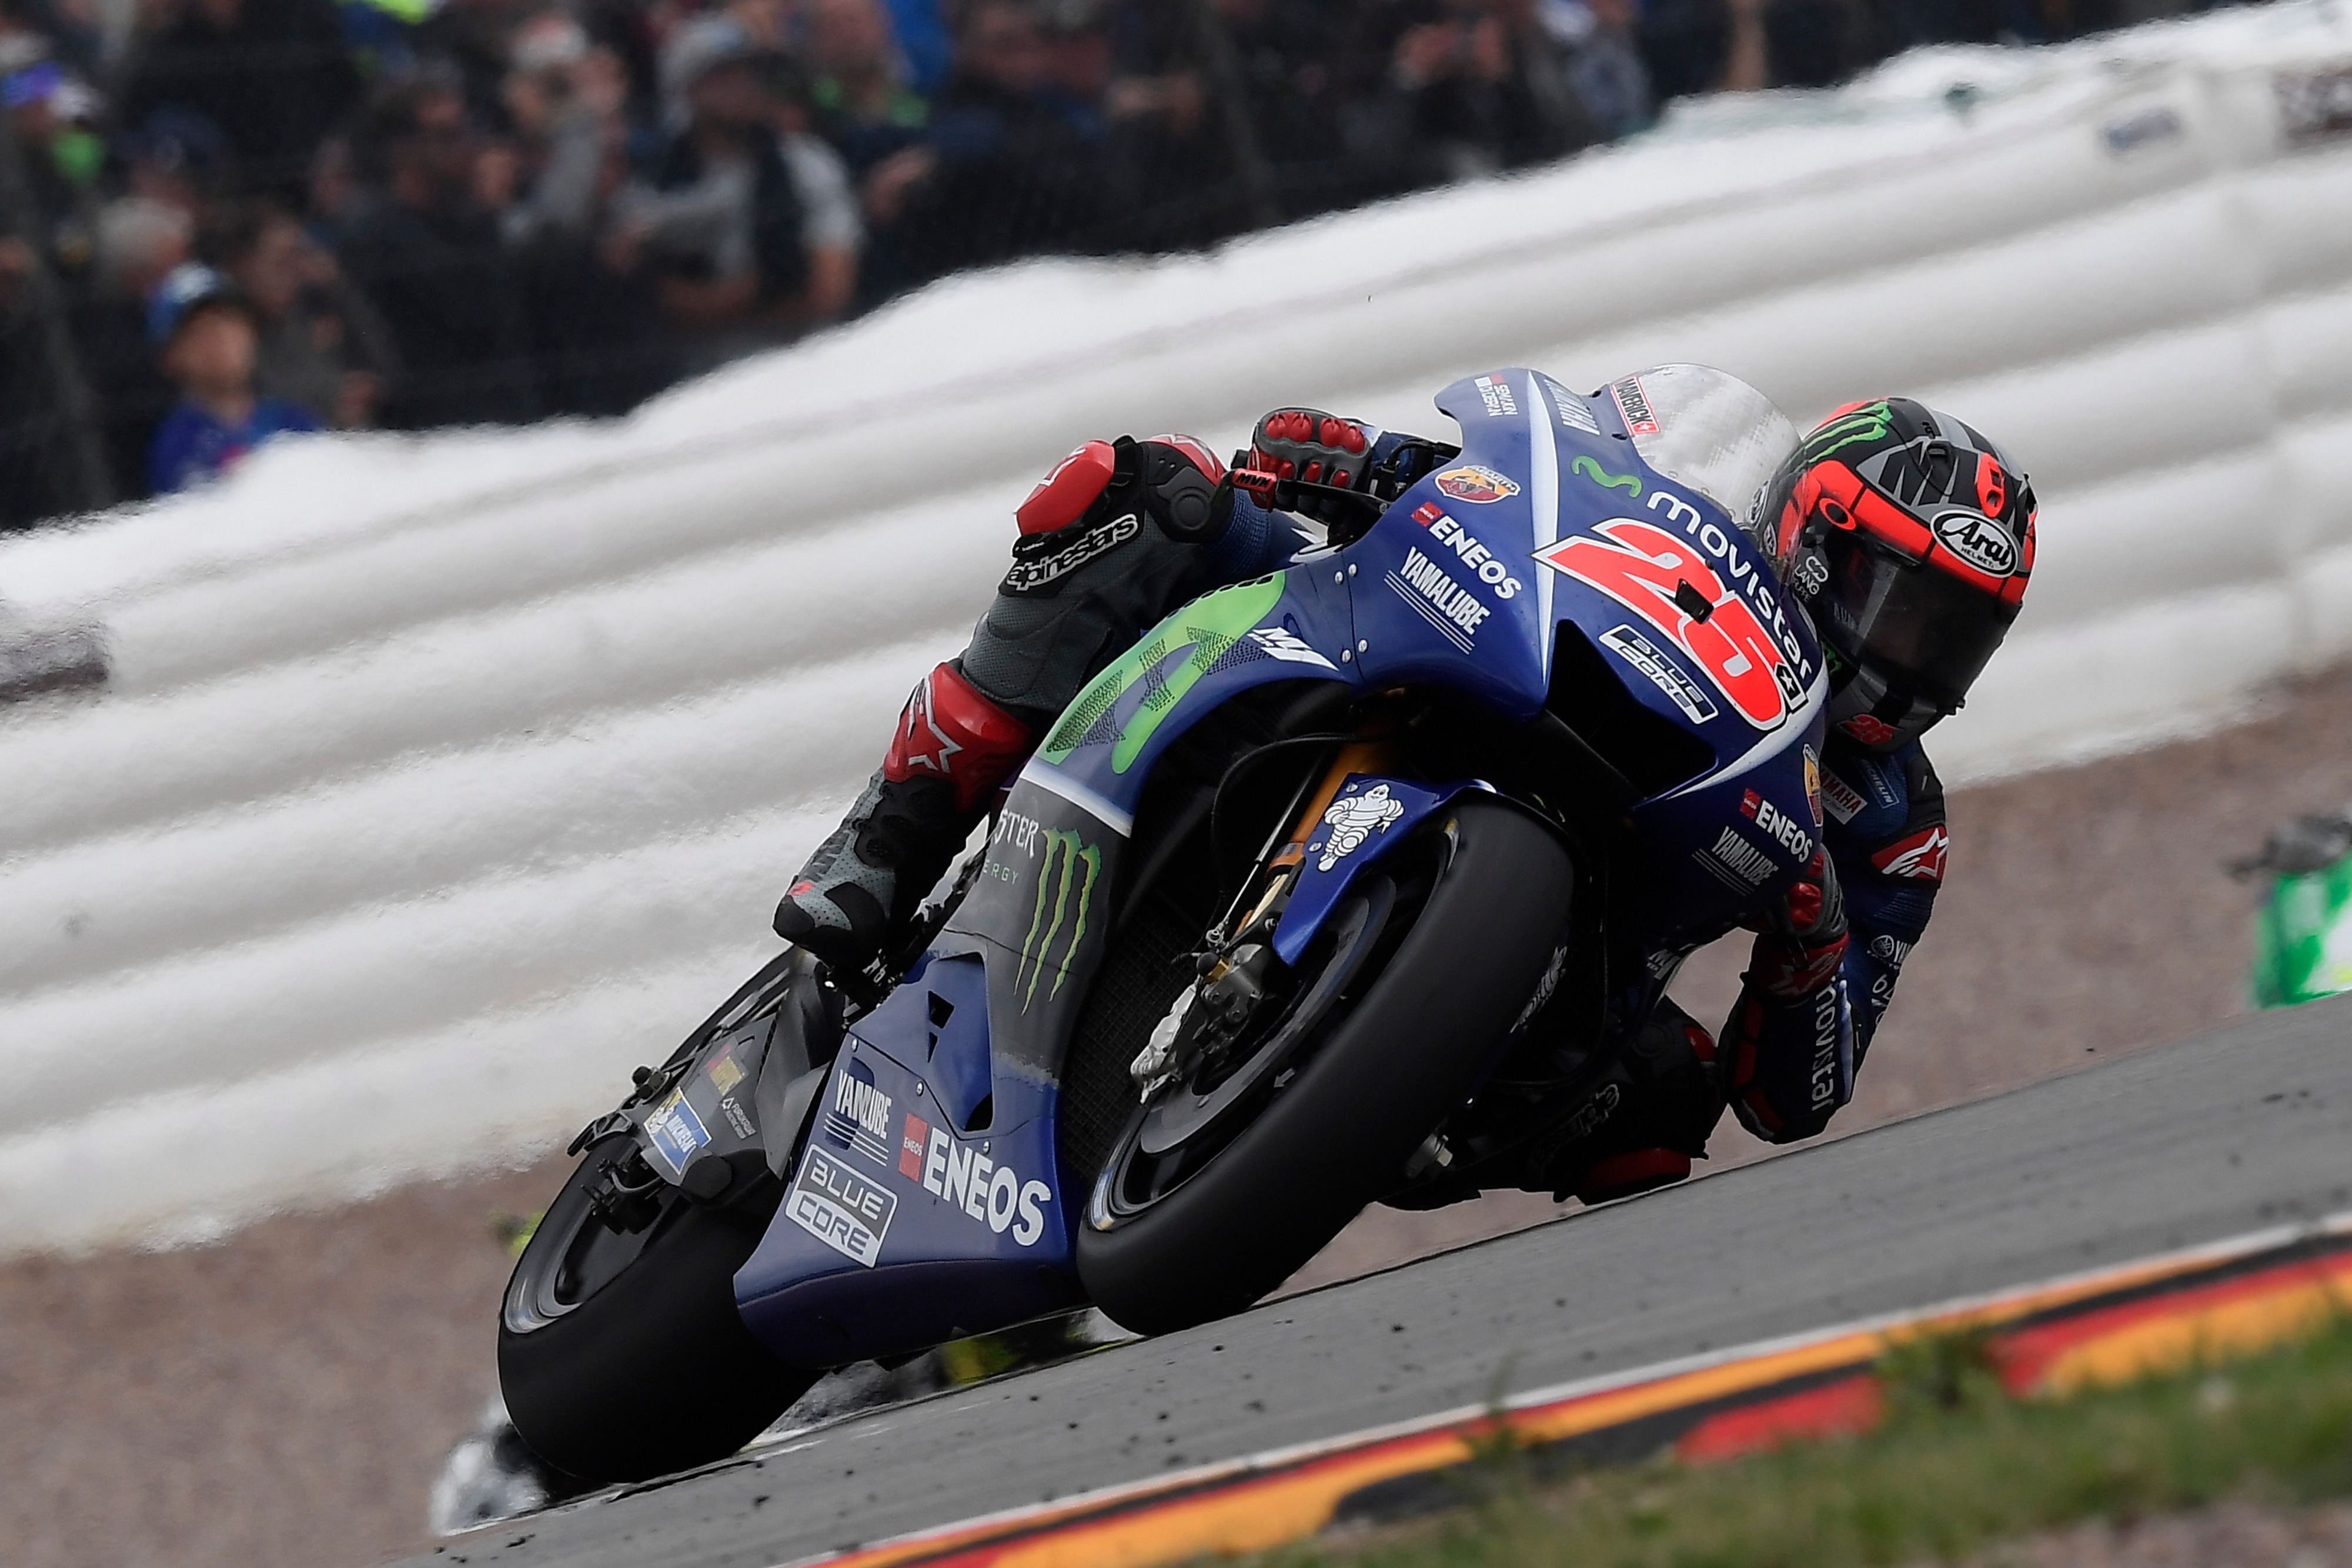 Movistar Yamaha Speed to Fourth and Fifth in Sachsenring Race - Yamaha Racing